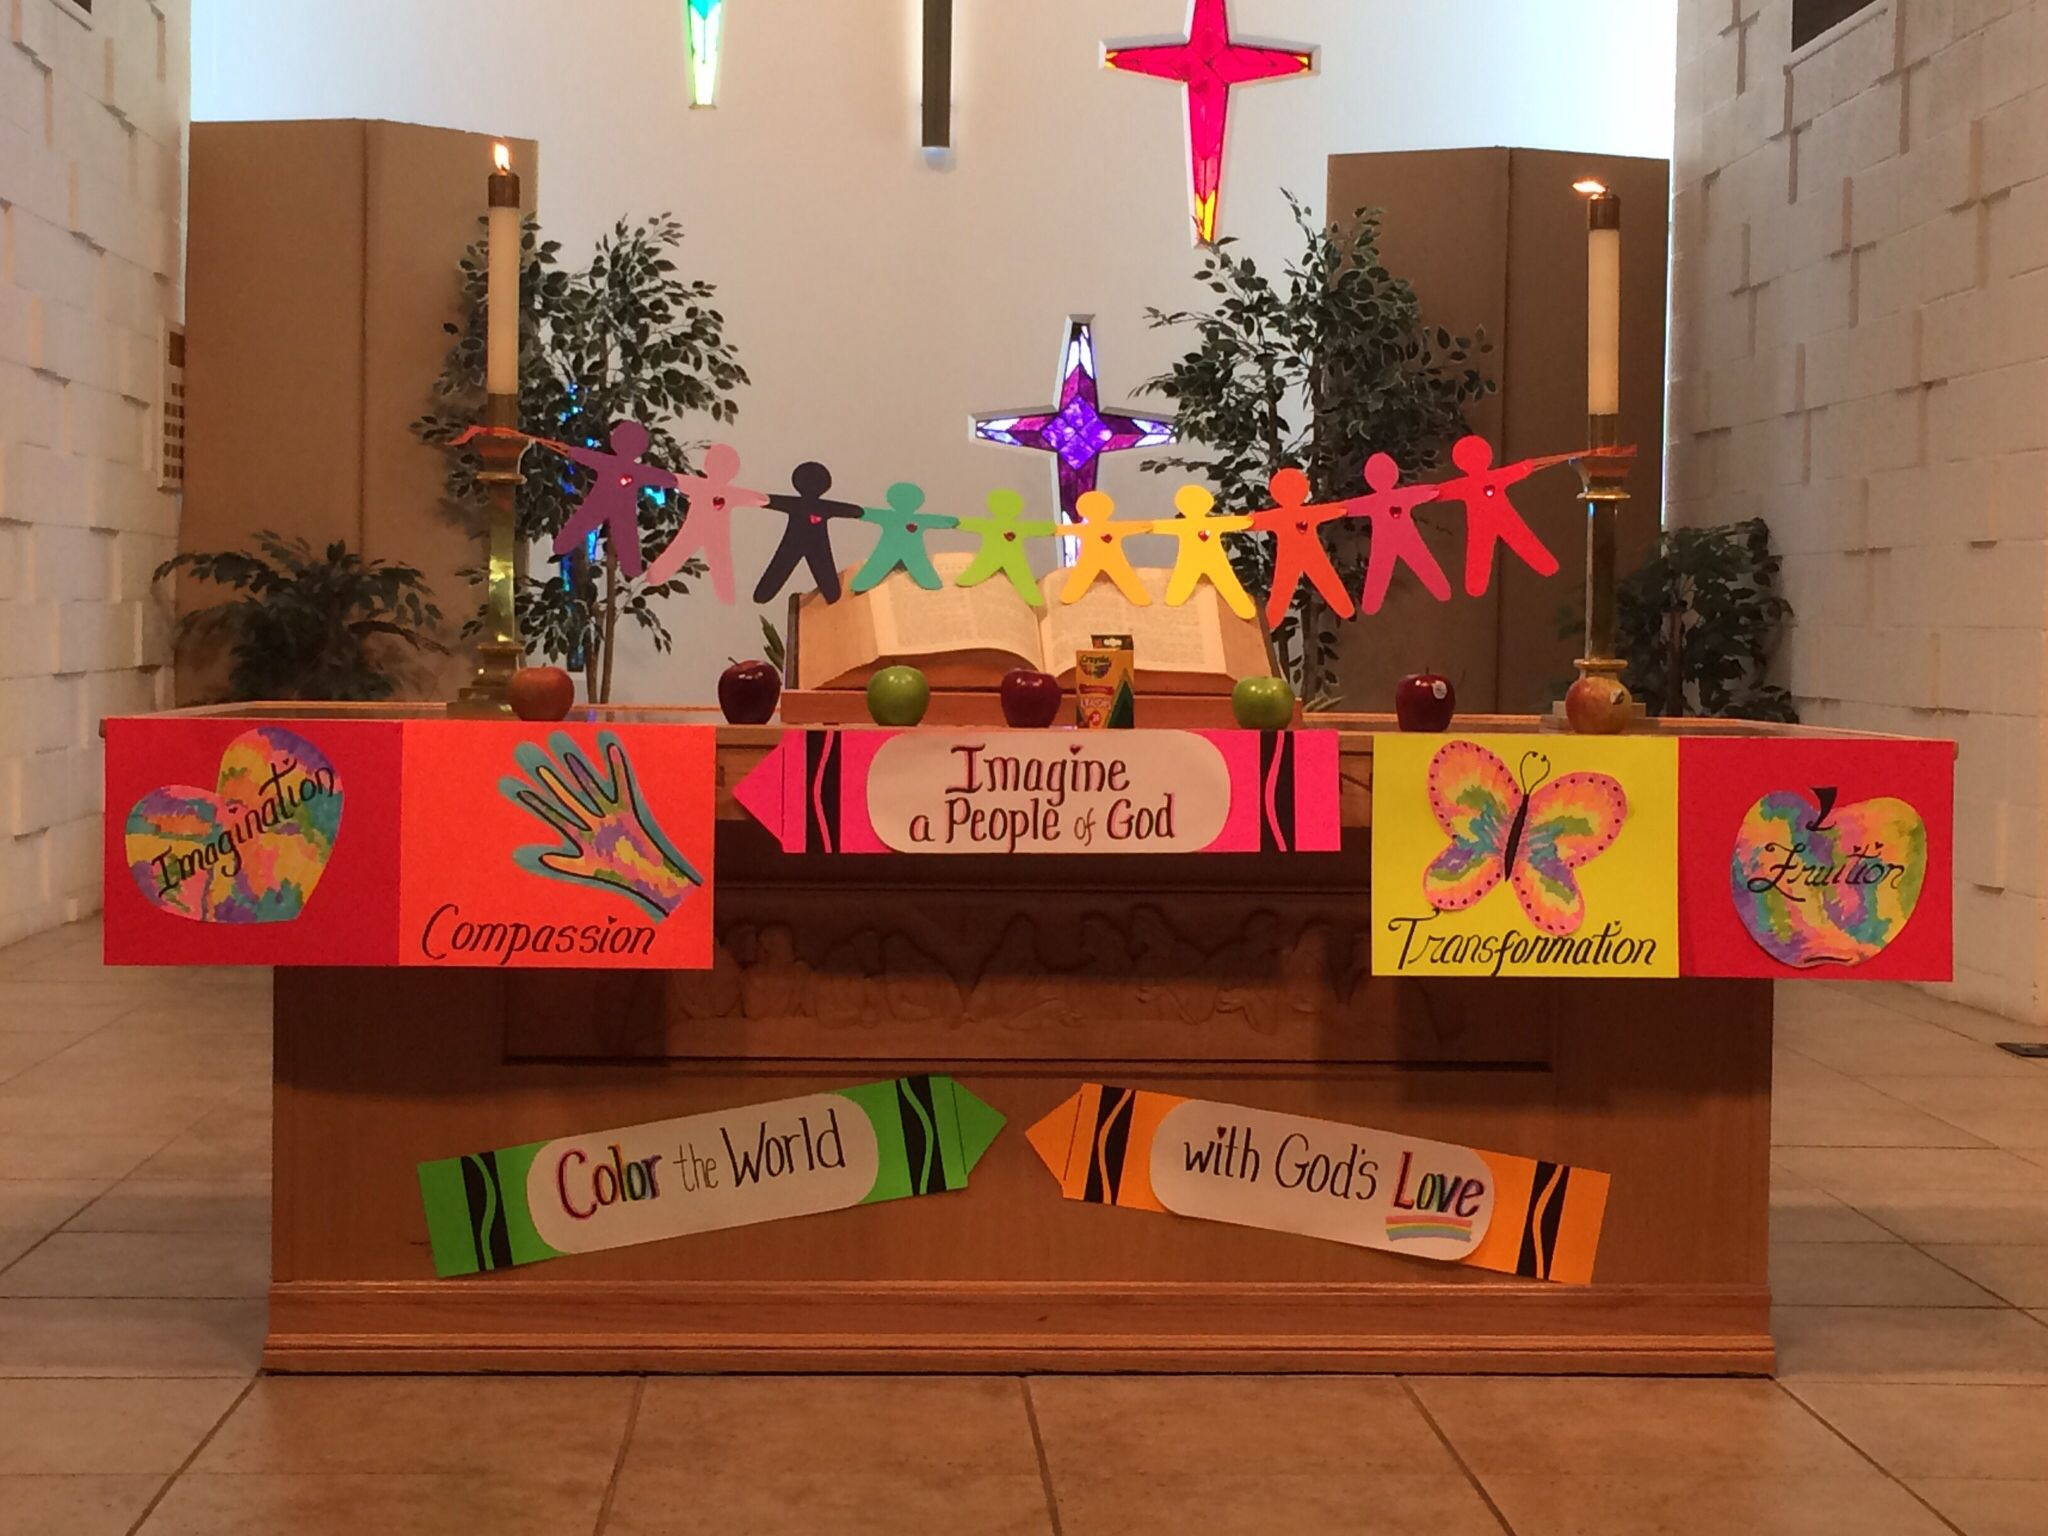 Our altar for Imagine a People of God